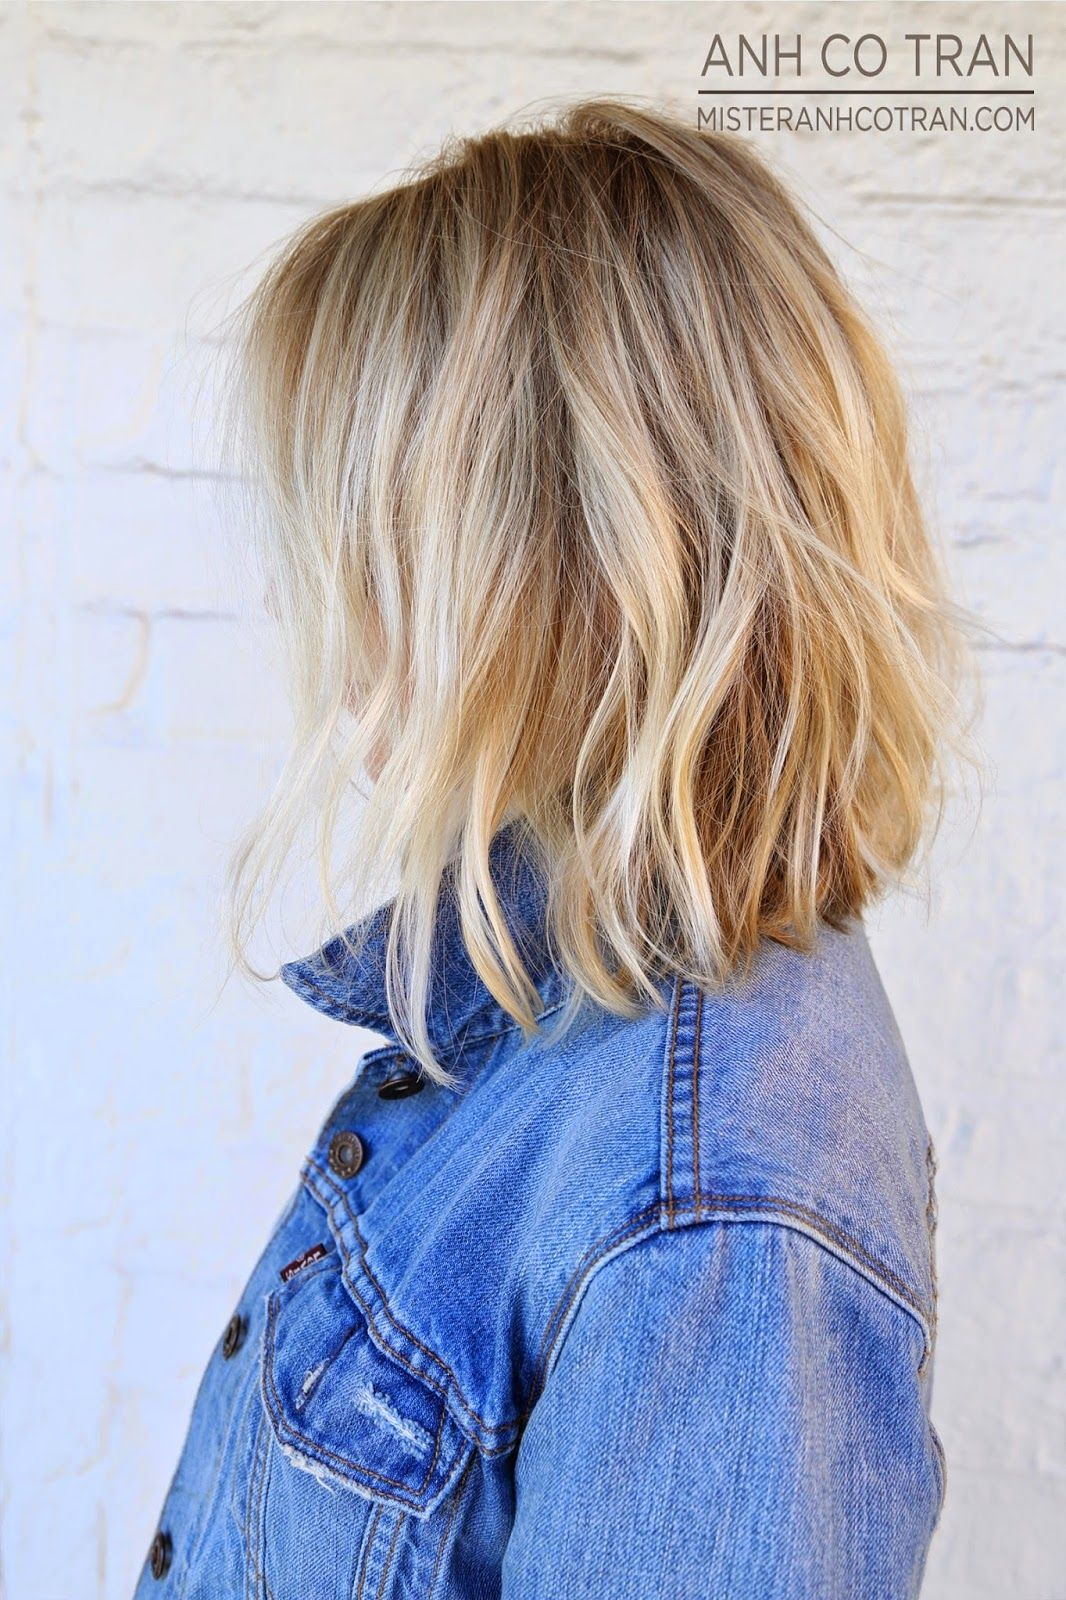 Boy hairstyle highlight pin by mandy cole on health u beauty  pinterest  beverly hills